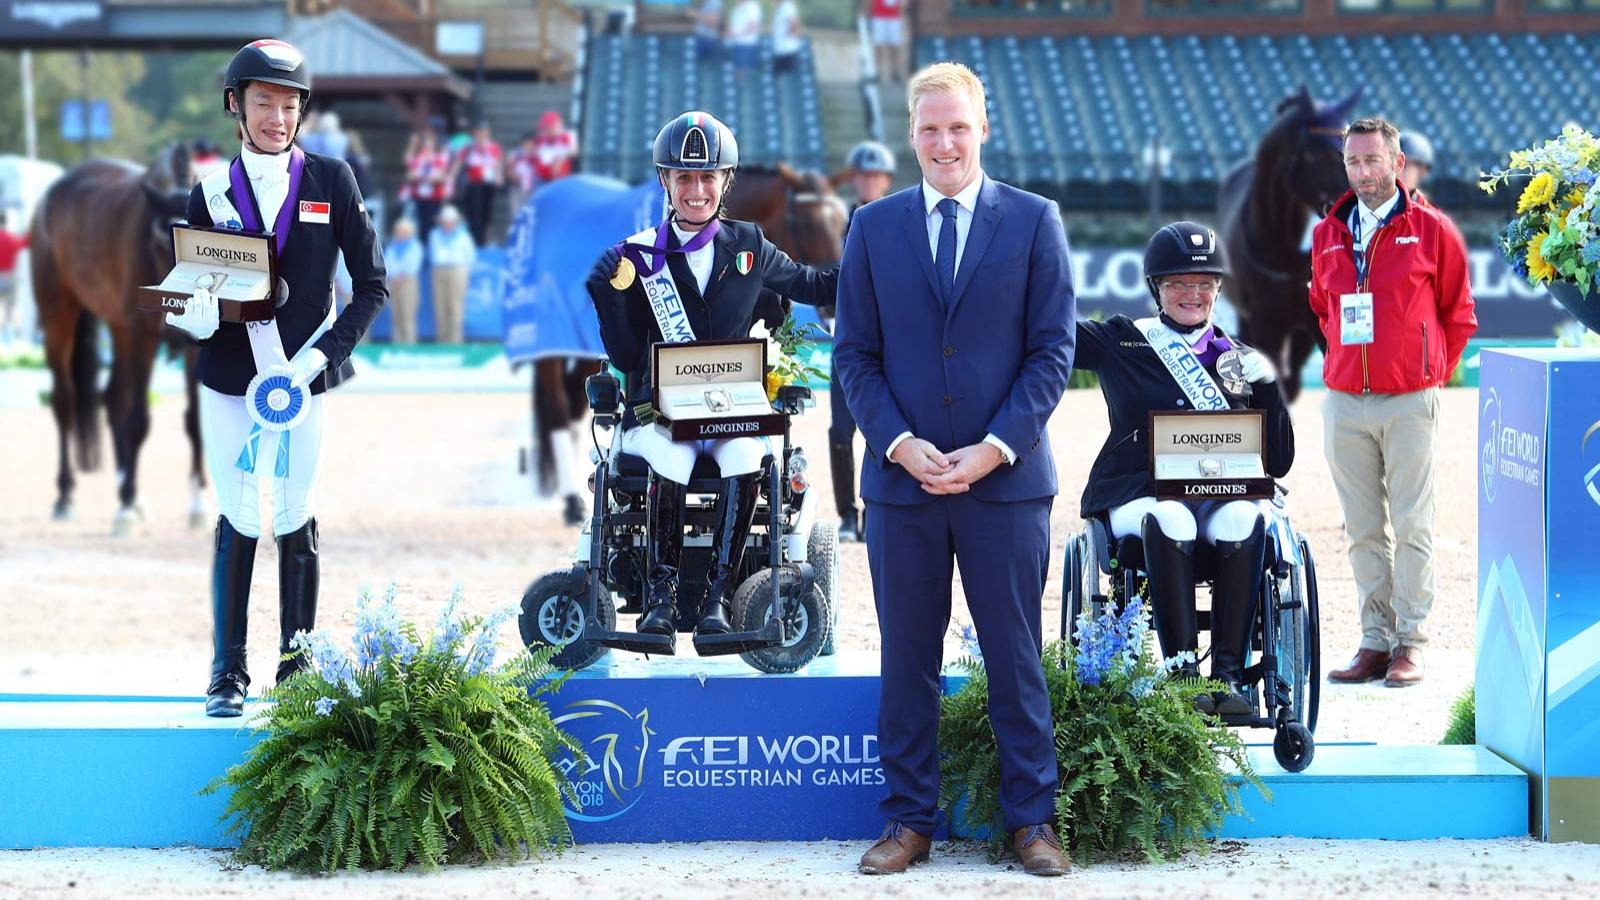 FEI World Equestrian Games Tryon 2018, Para-Dressage,pic1